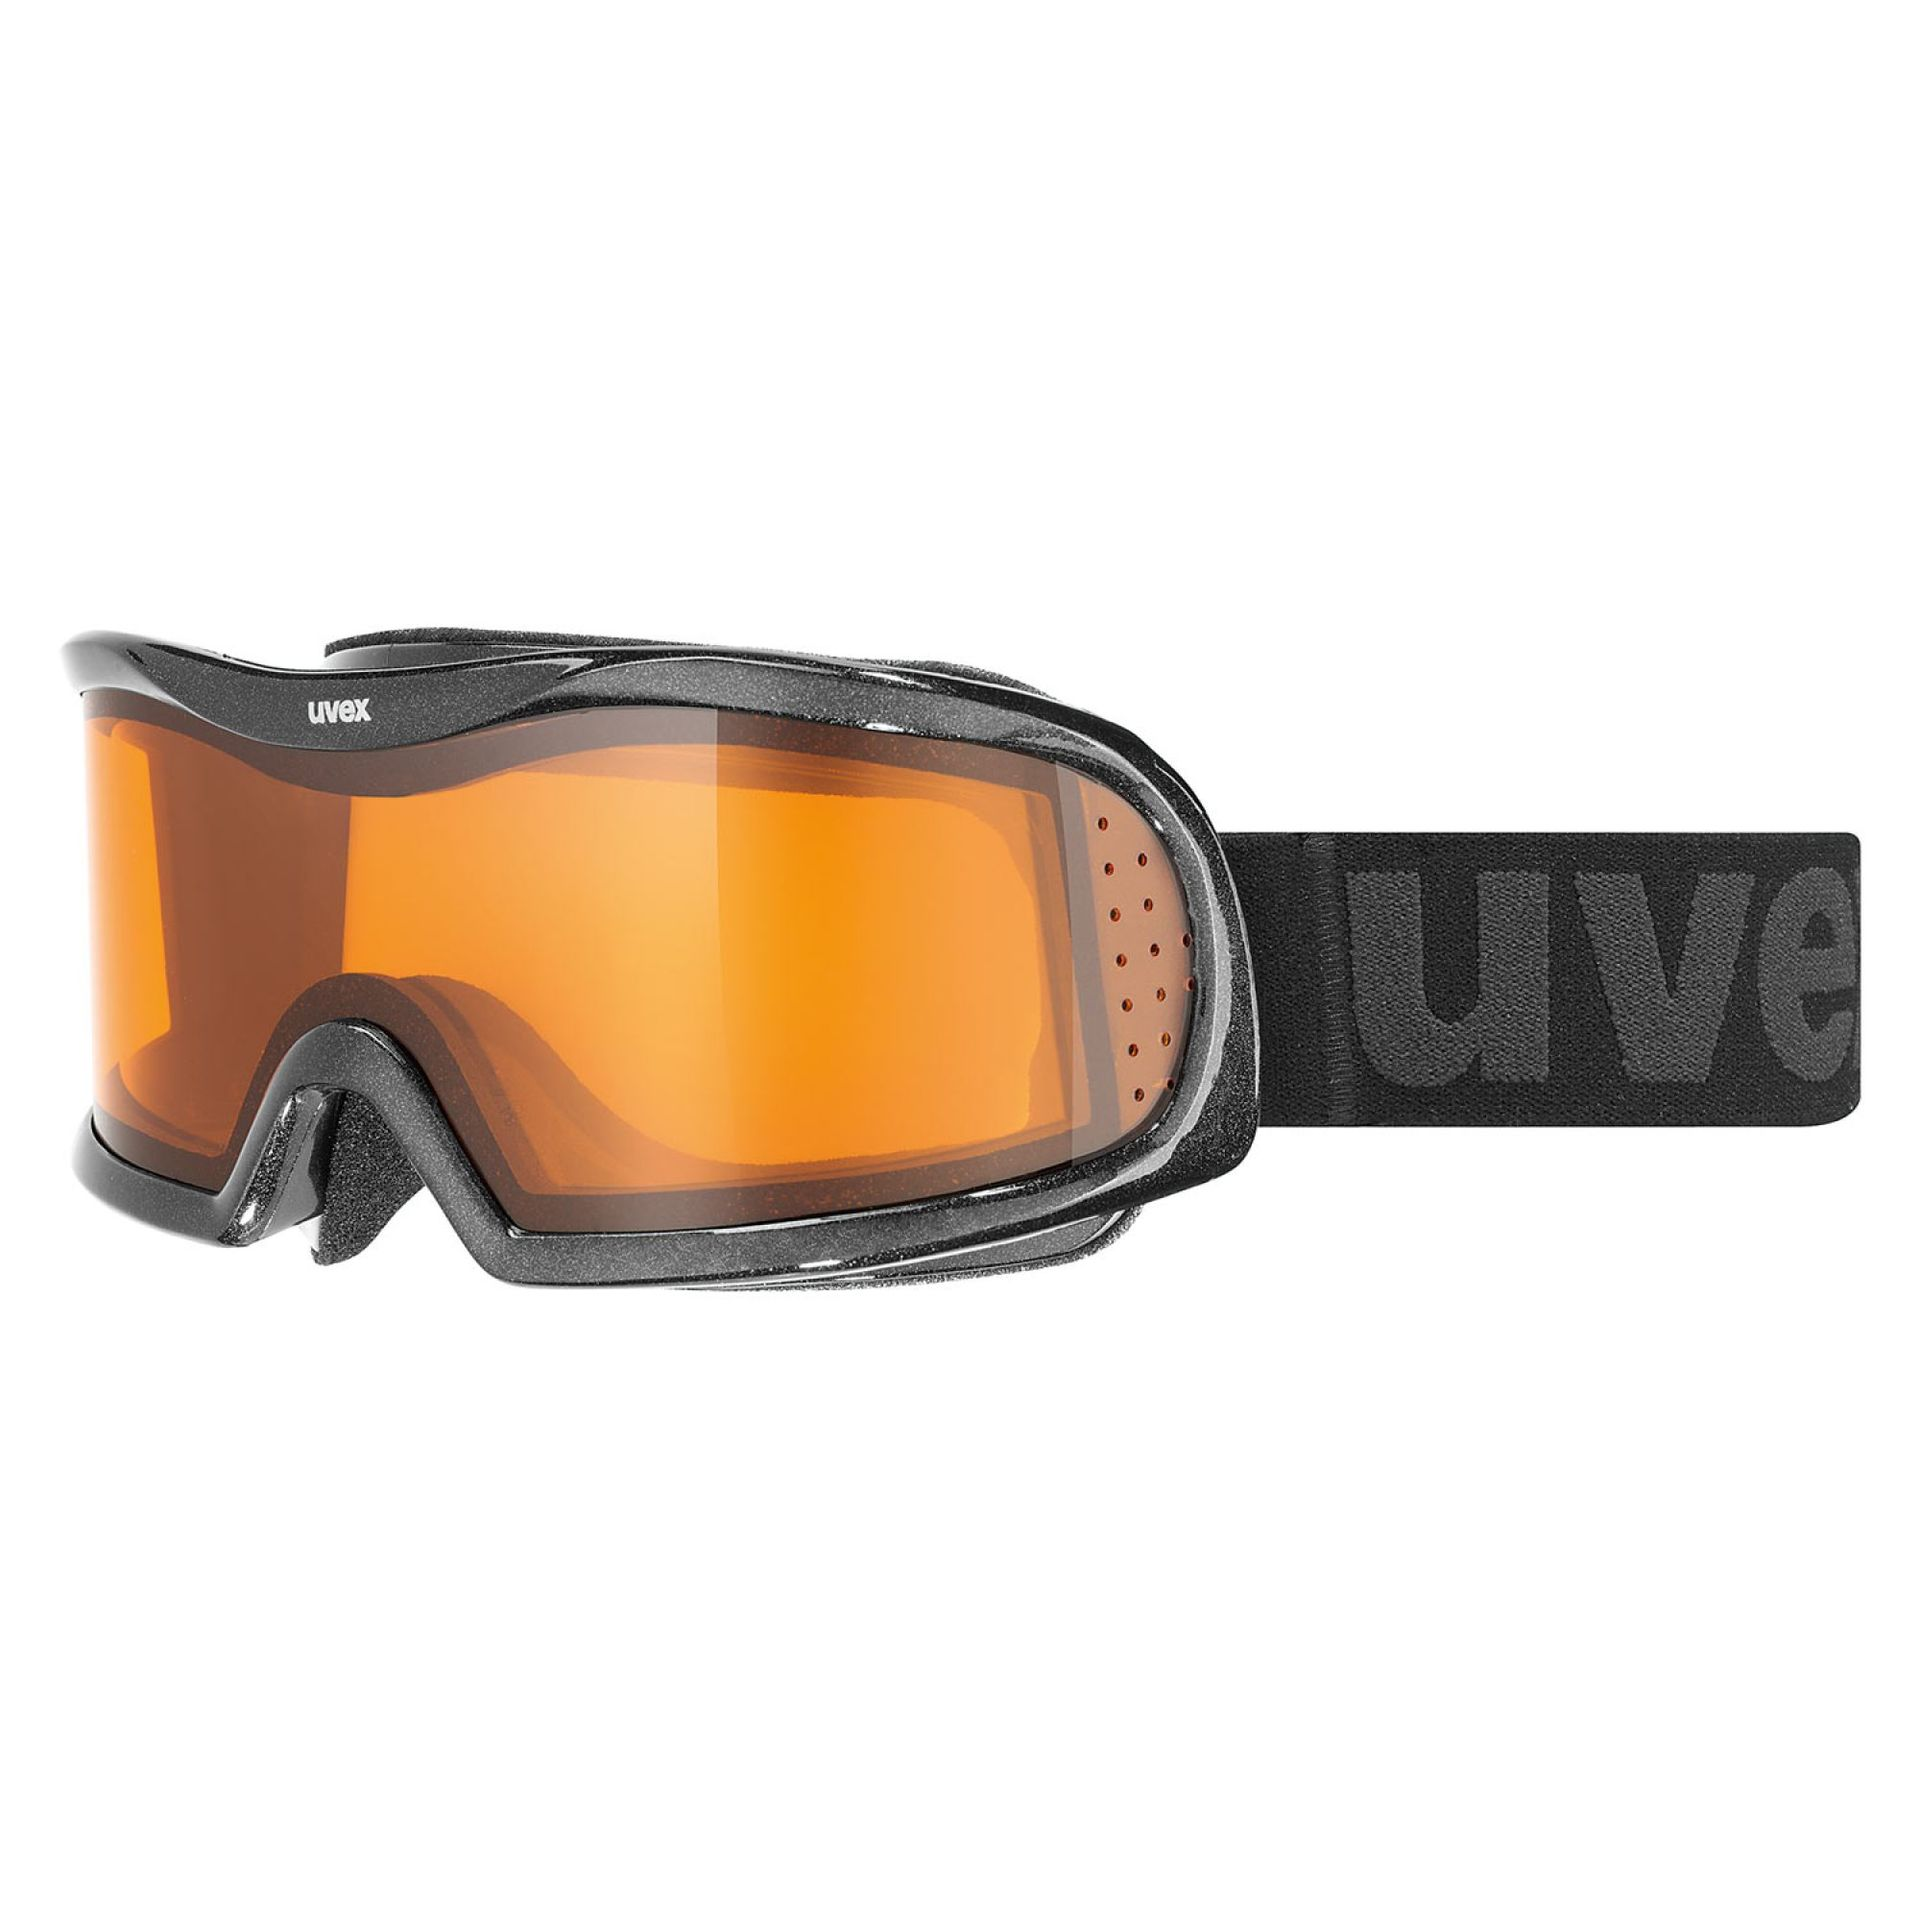 GOGLE UVEX  VISION OPTIC L BLACK MET